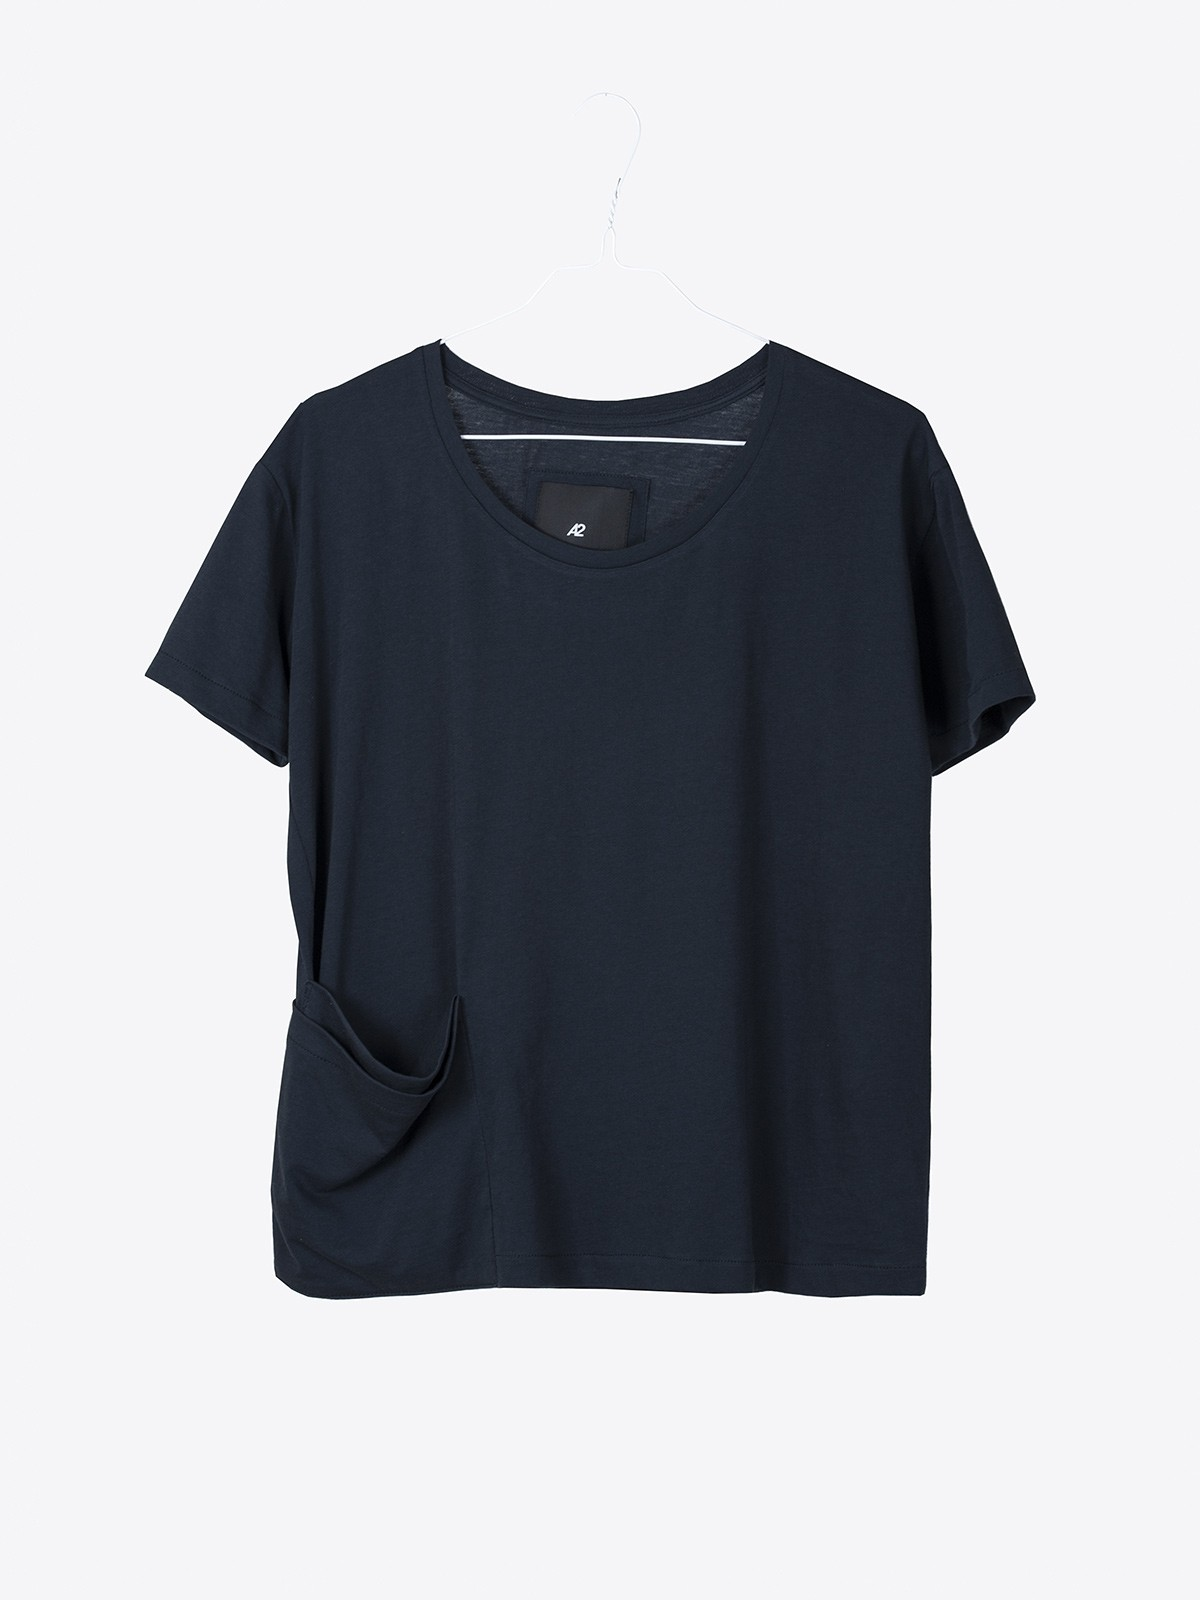 A2 womens pick pocket shirt | dark navy